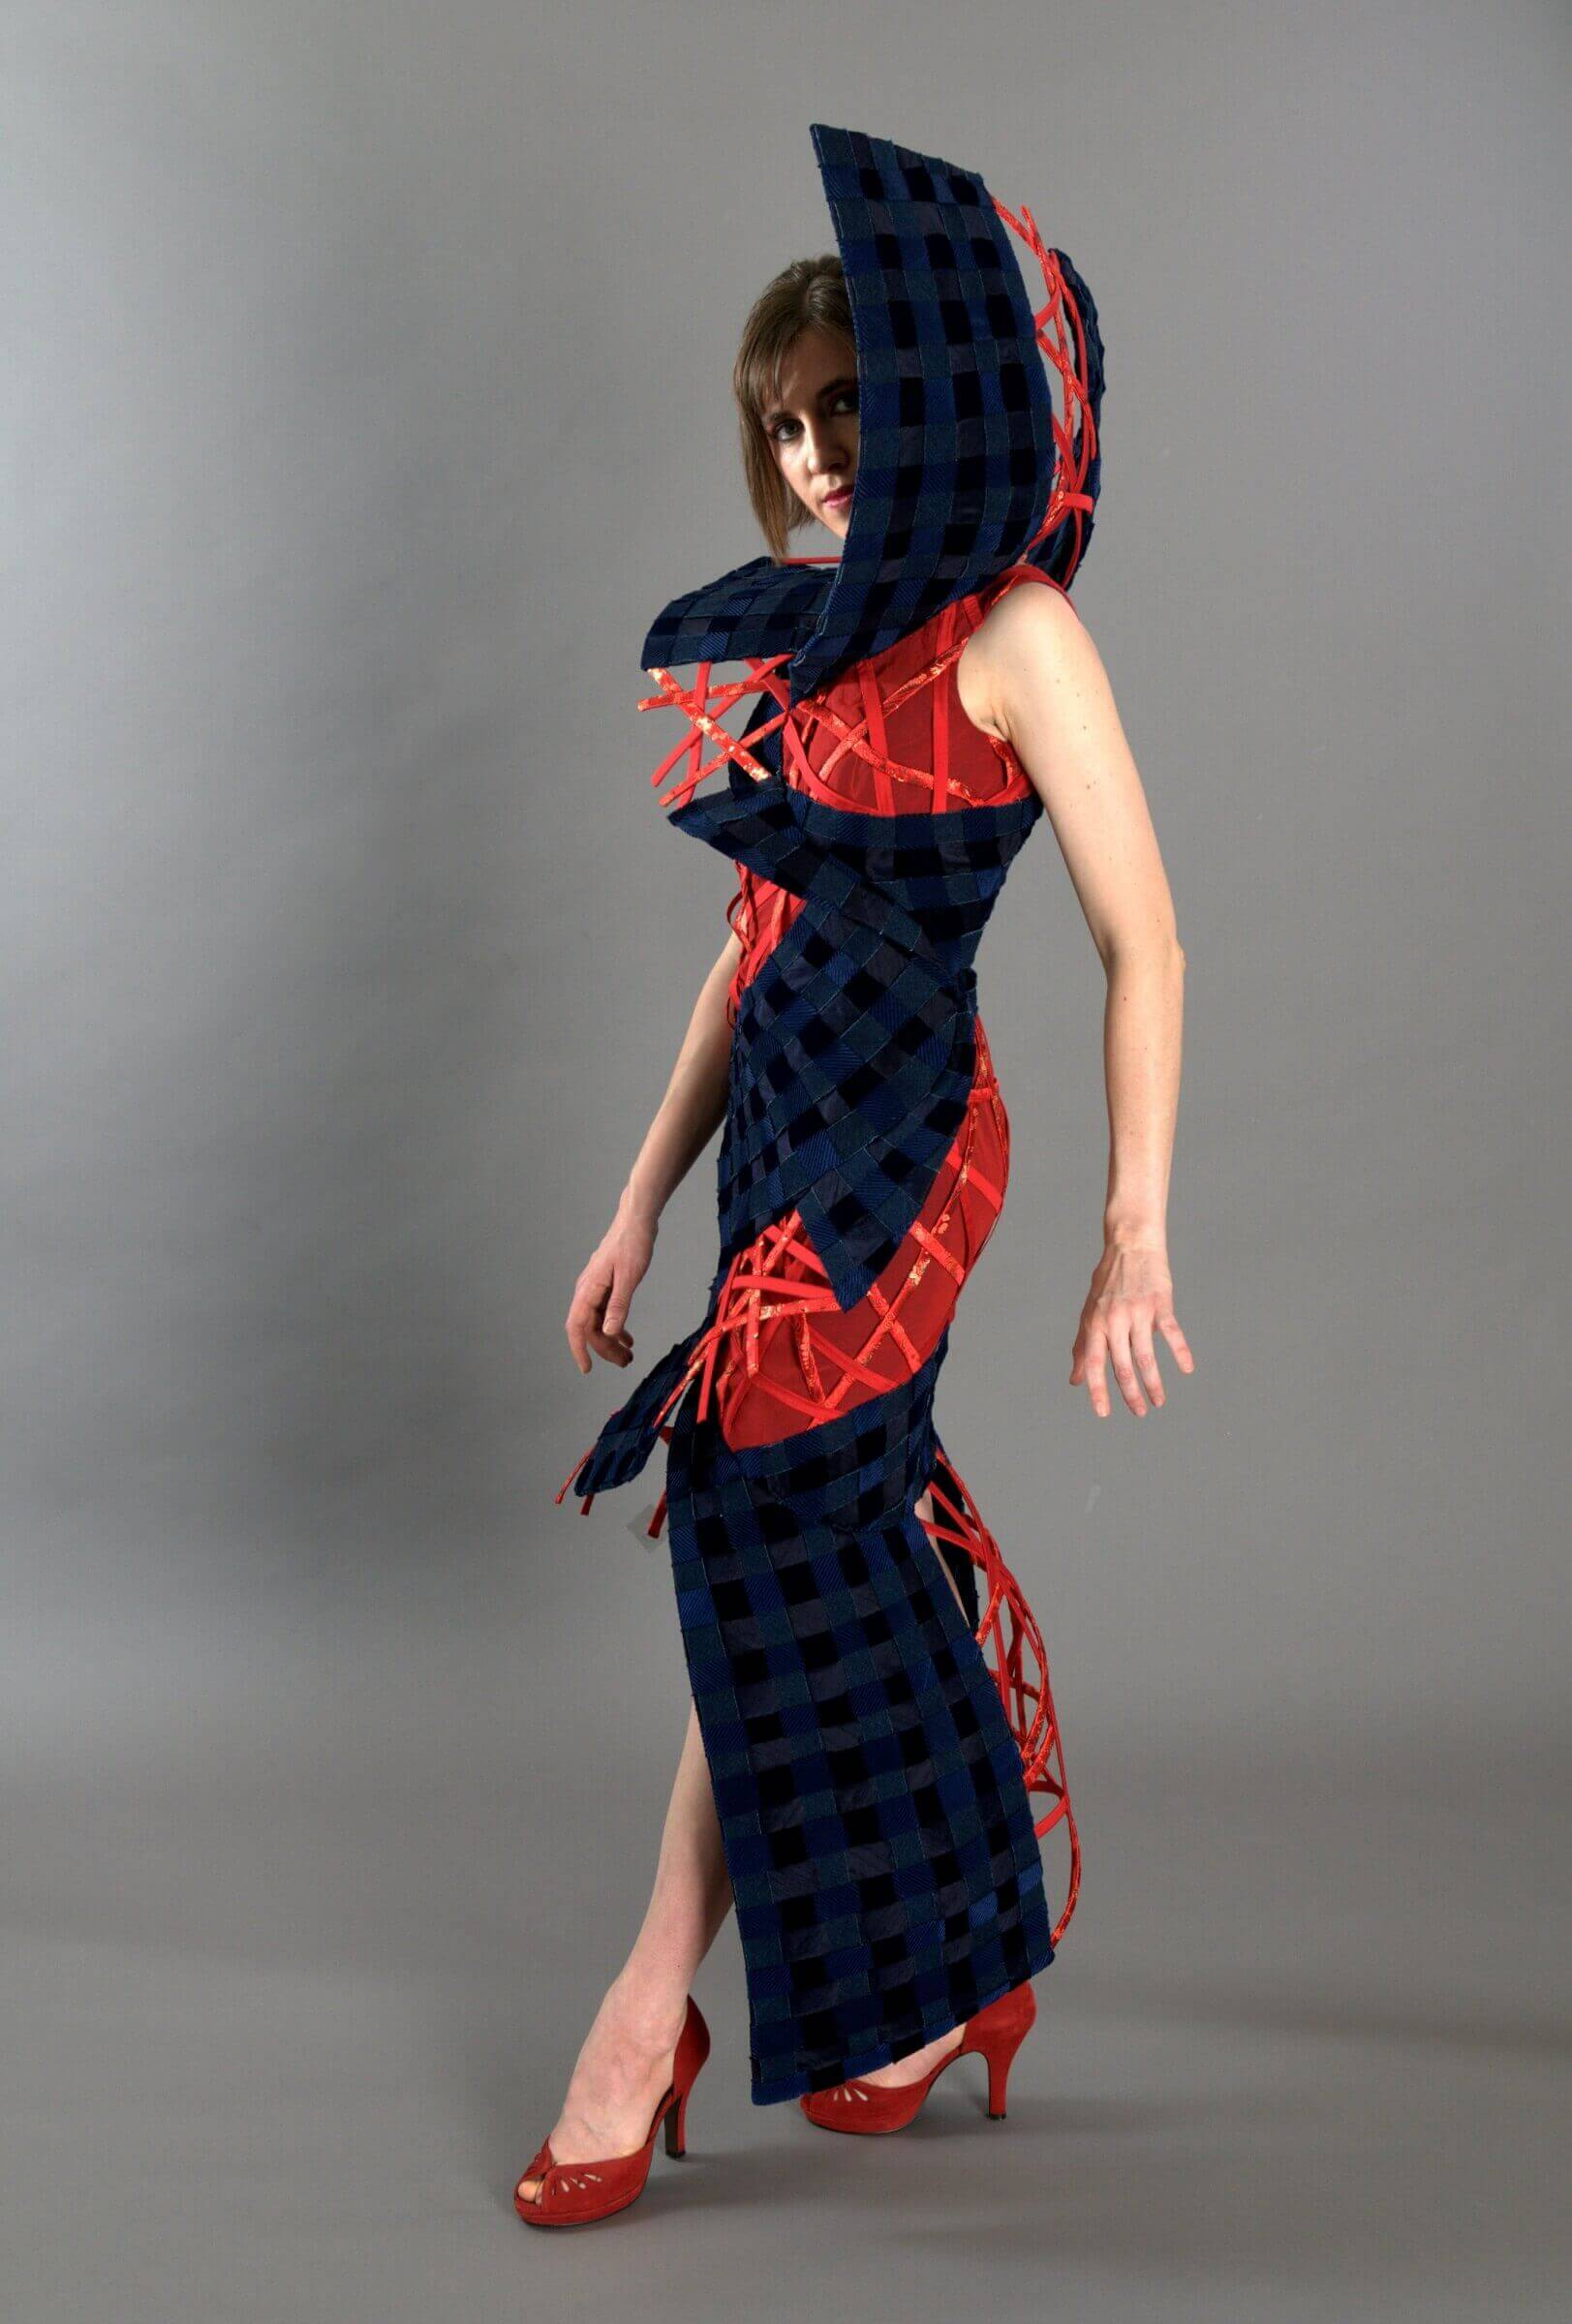 Wearable Art by Rebecca Wendlandt: Vortex - Allure of the Big Top